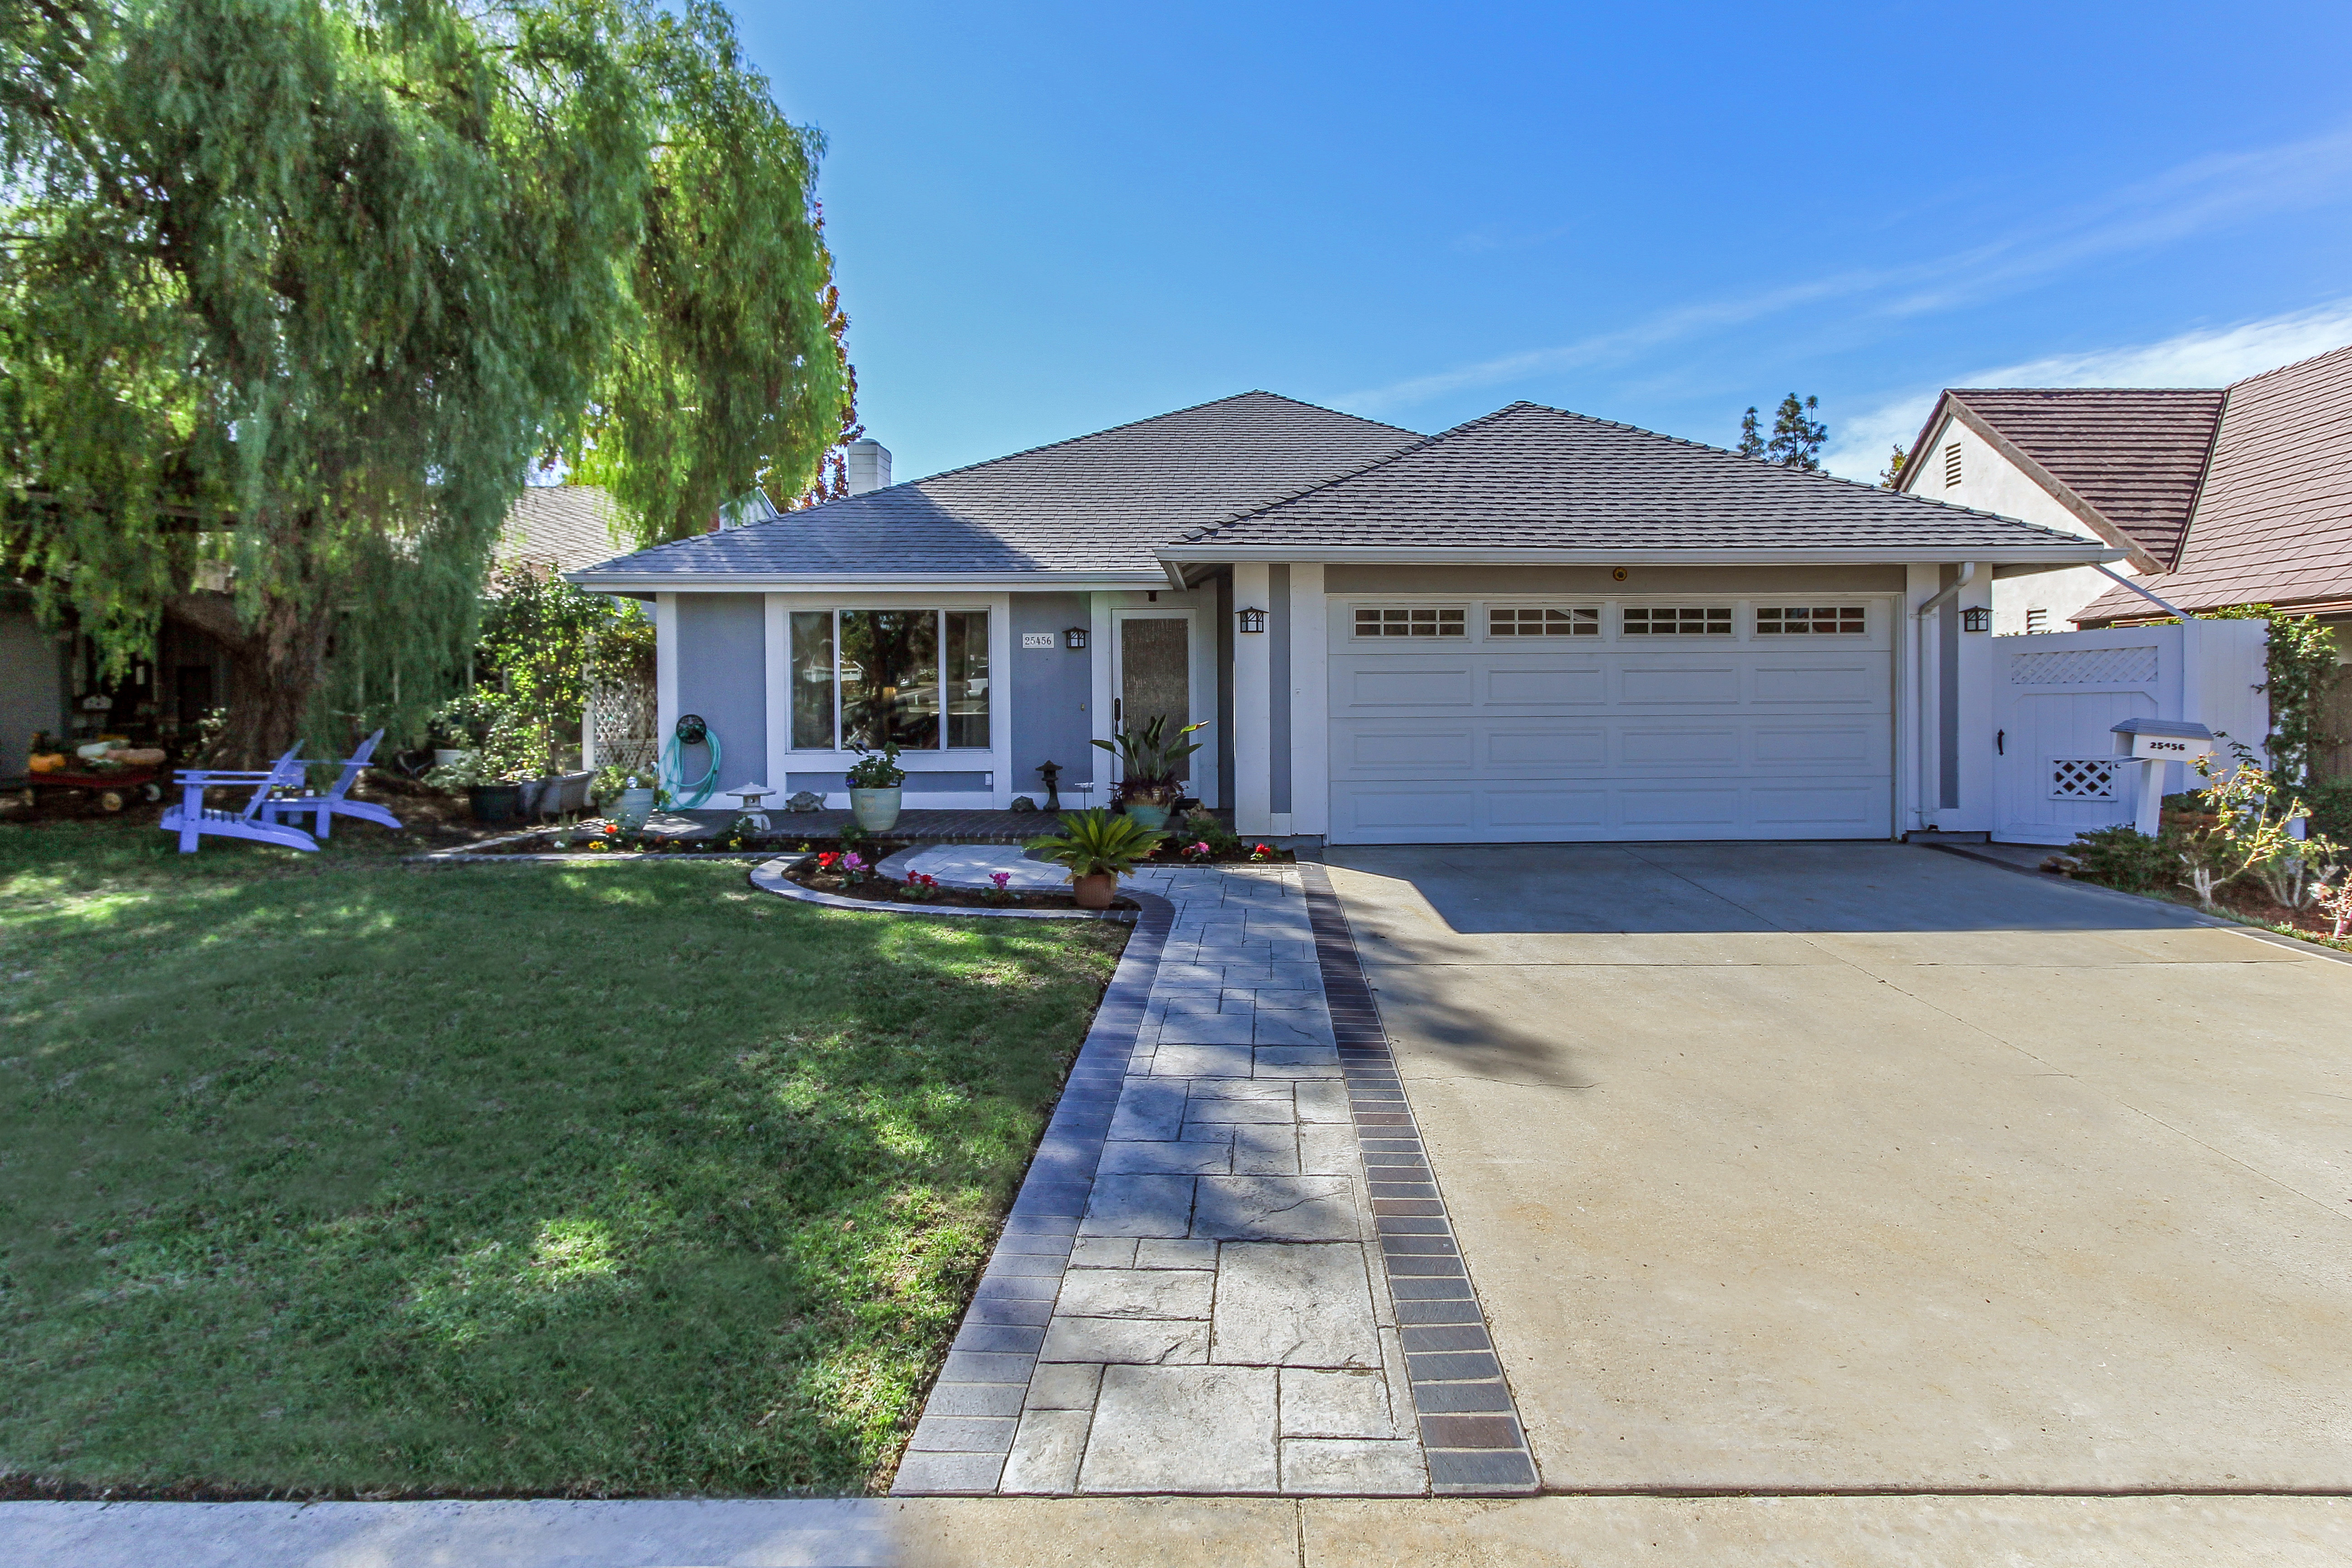 25456 Bayes Lake Forest Ca Macteam